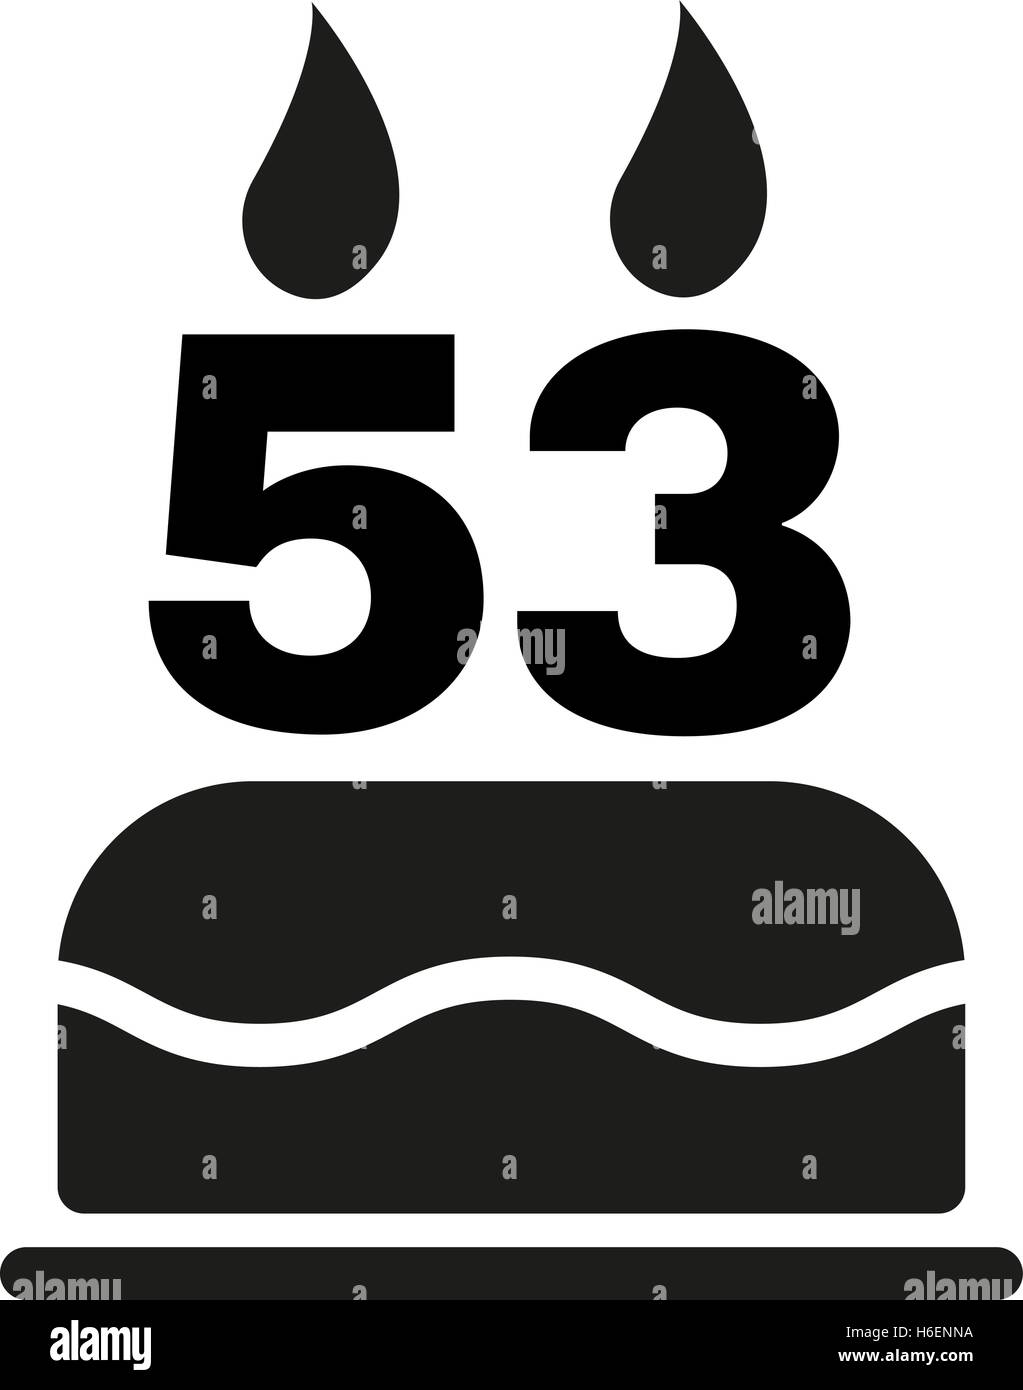 The Birthday Cake With Candles In The Form Of Number 53 Icon Stock